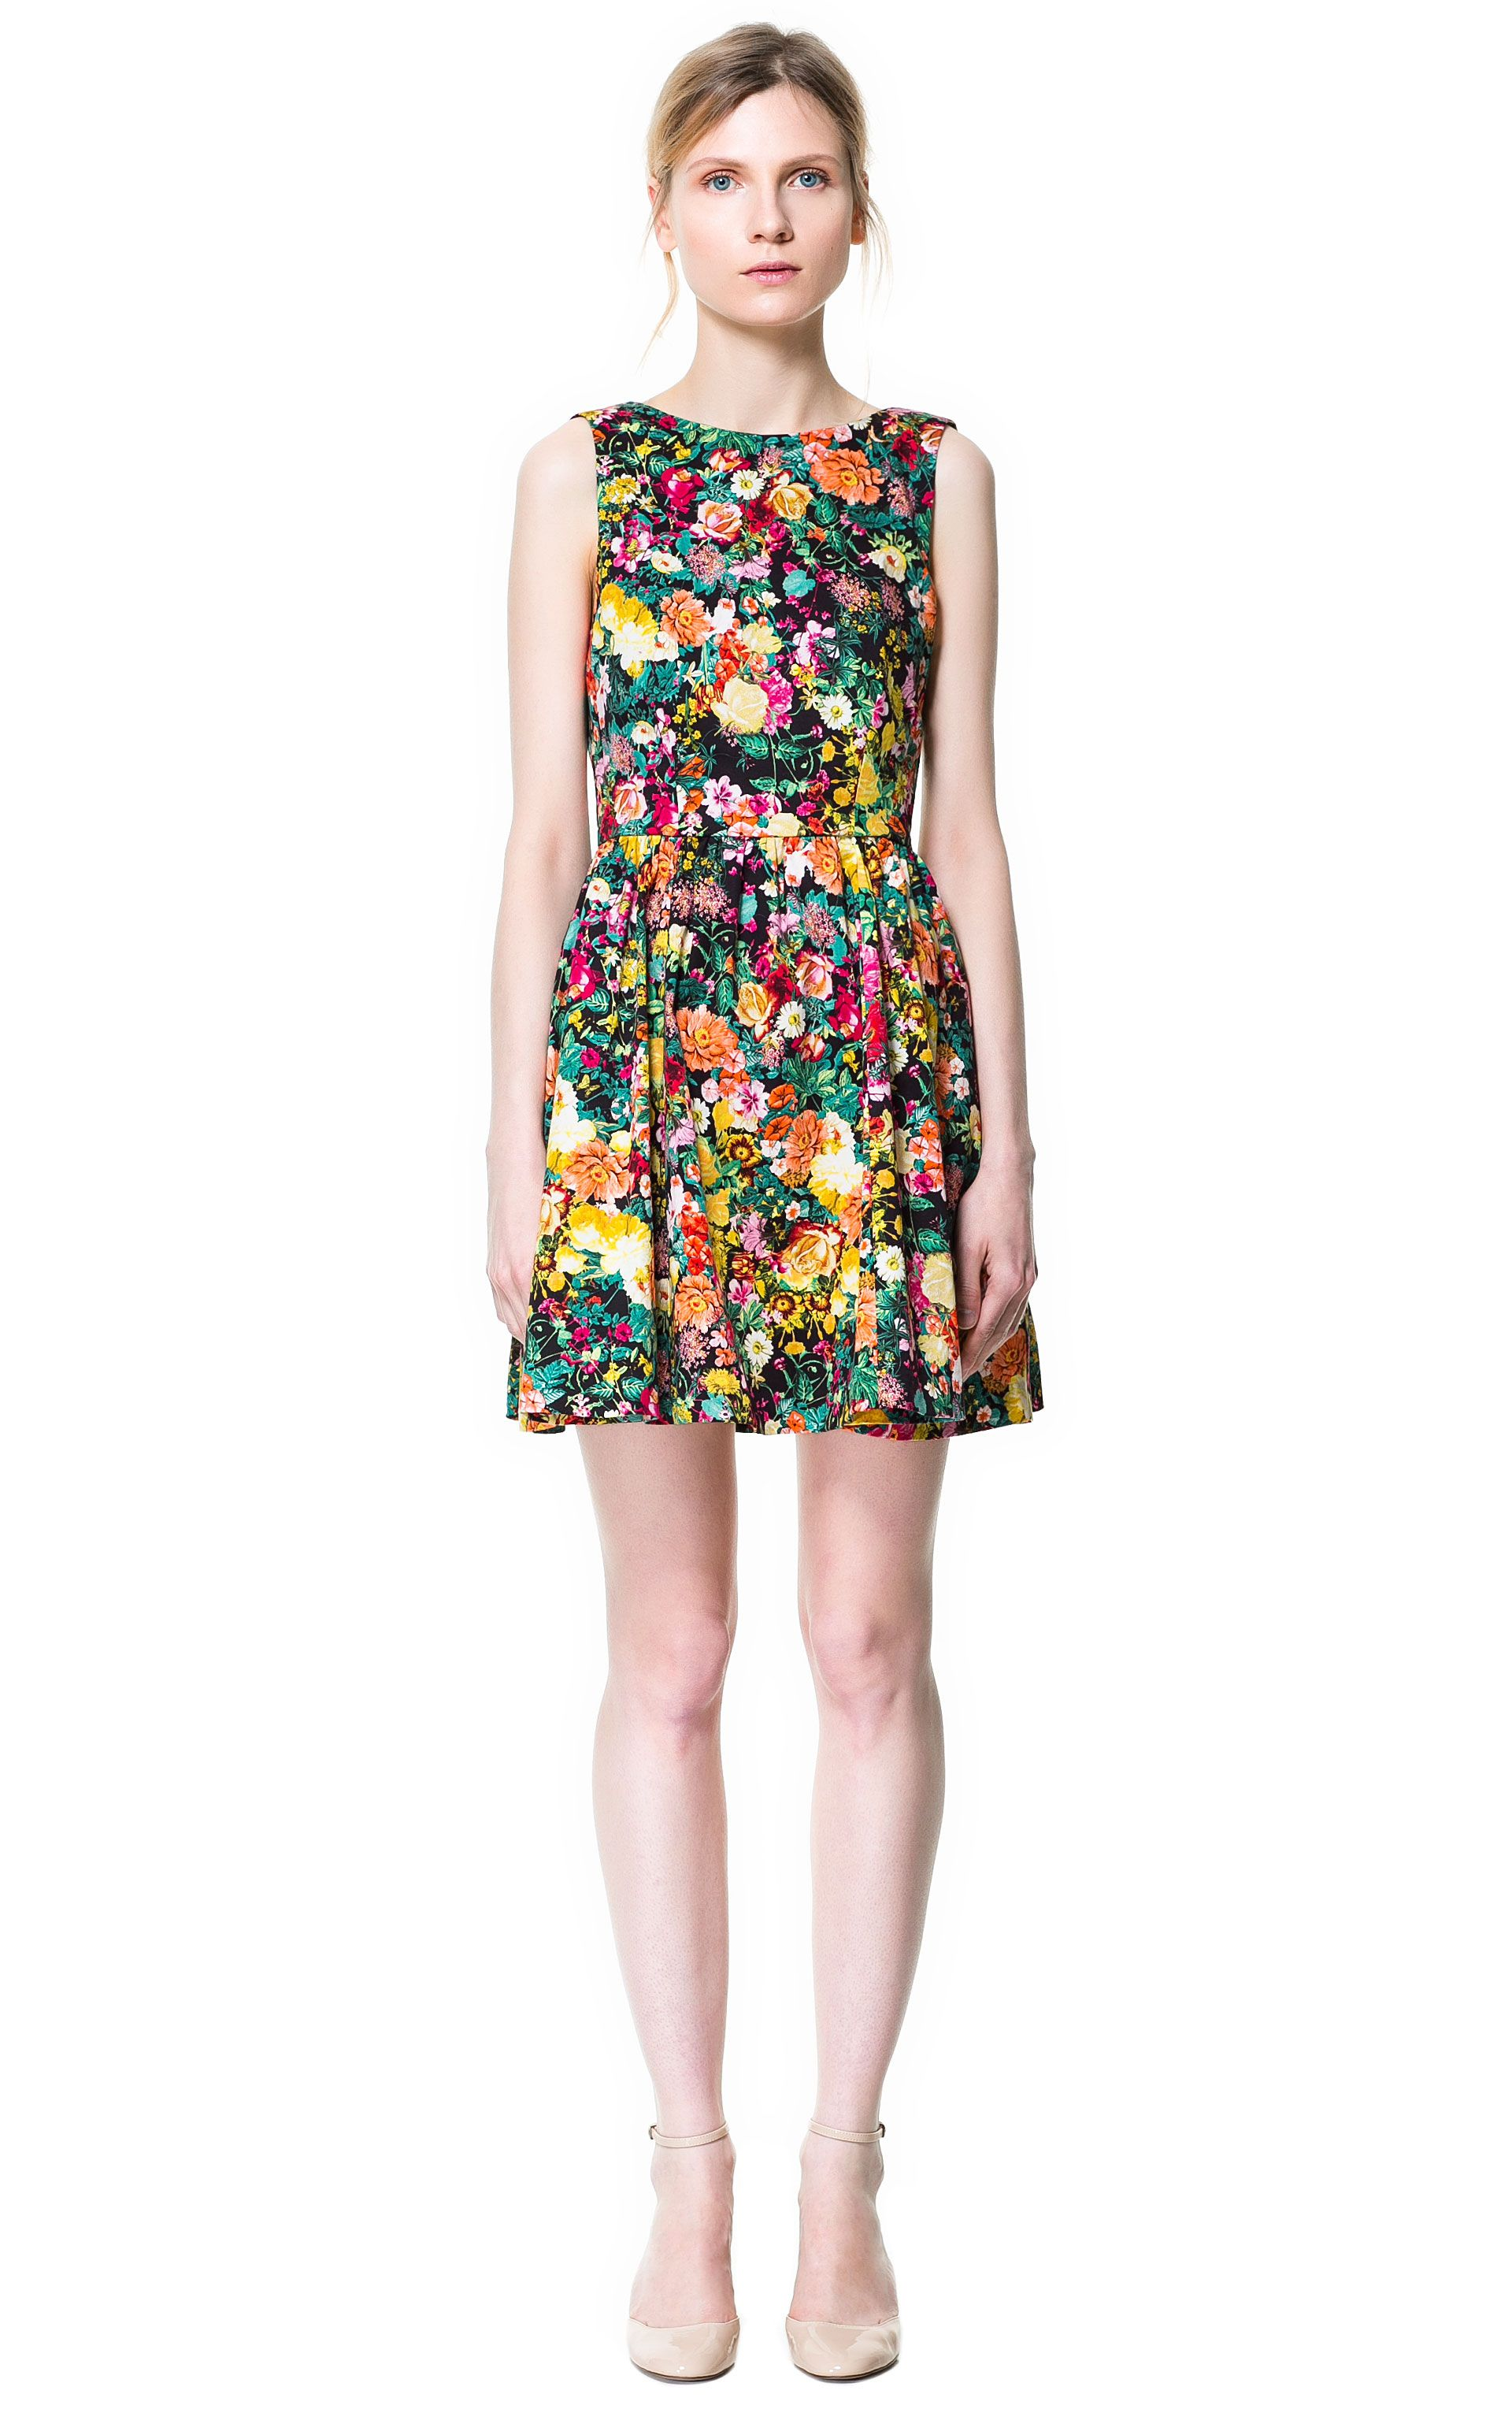 924f3987 Pleated Printed Dress £39.99 from Zara | Blog: Double Thumbs Dresses ...